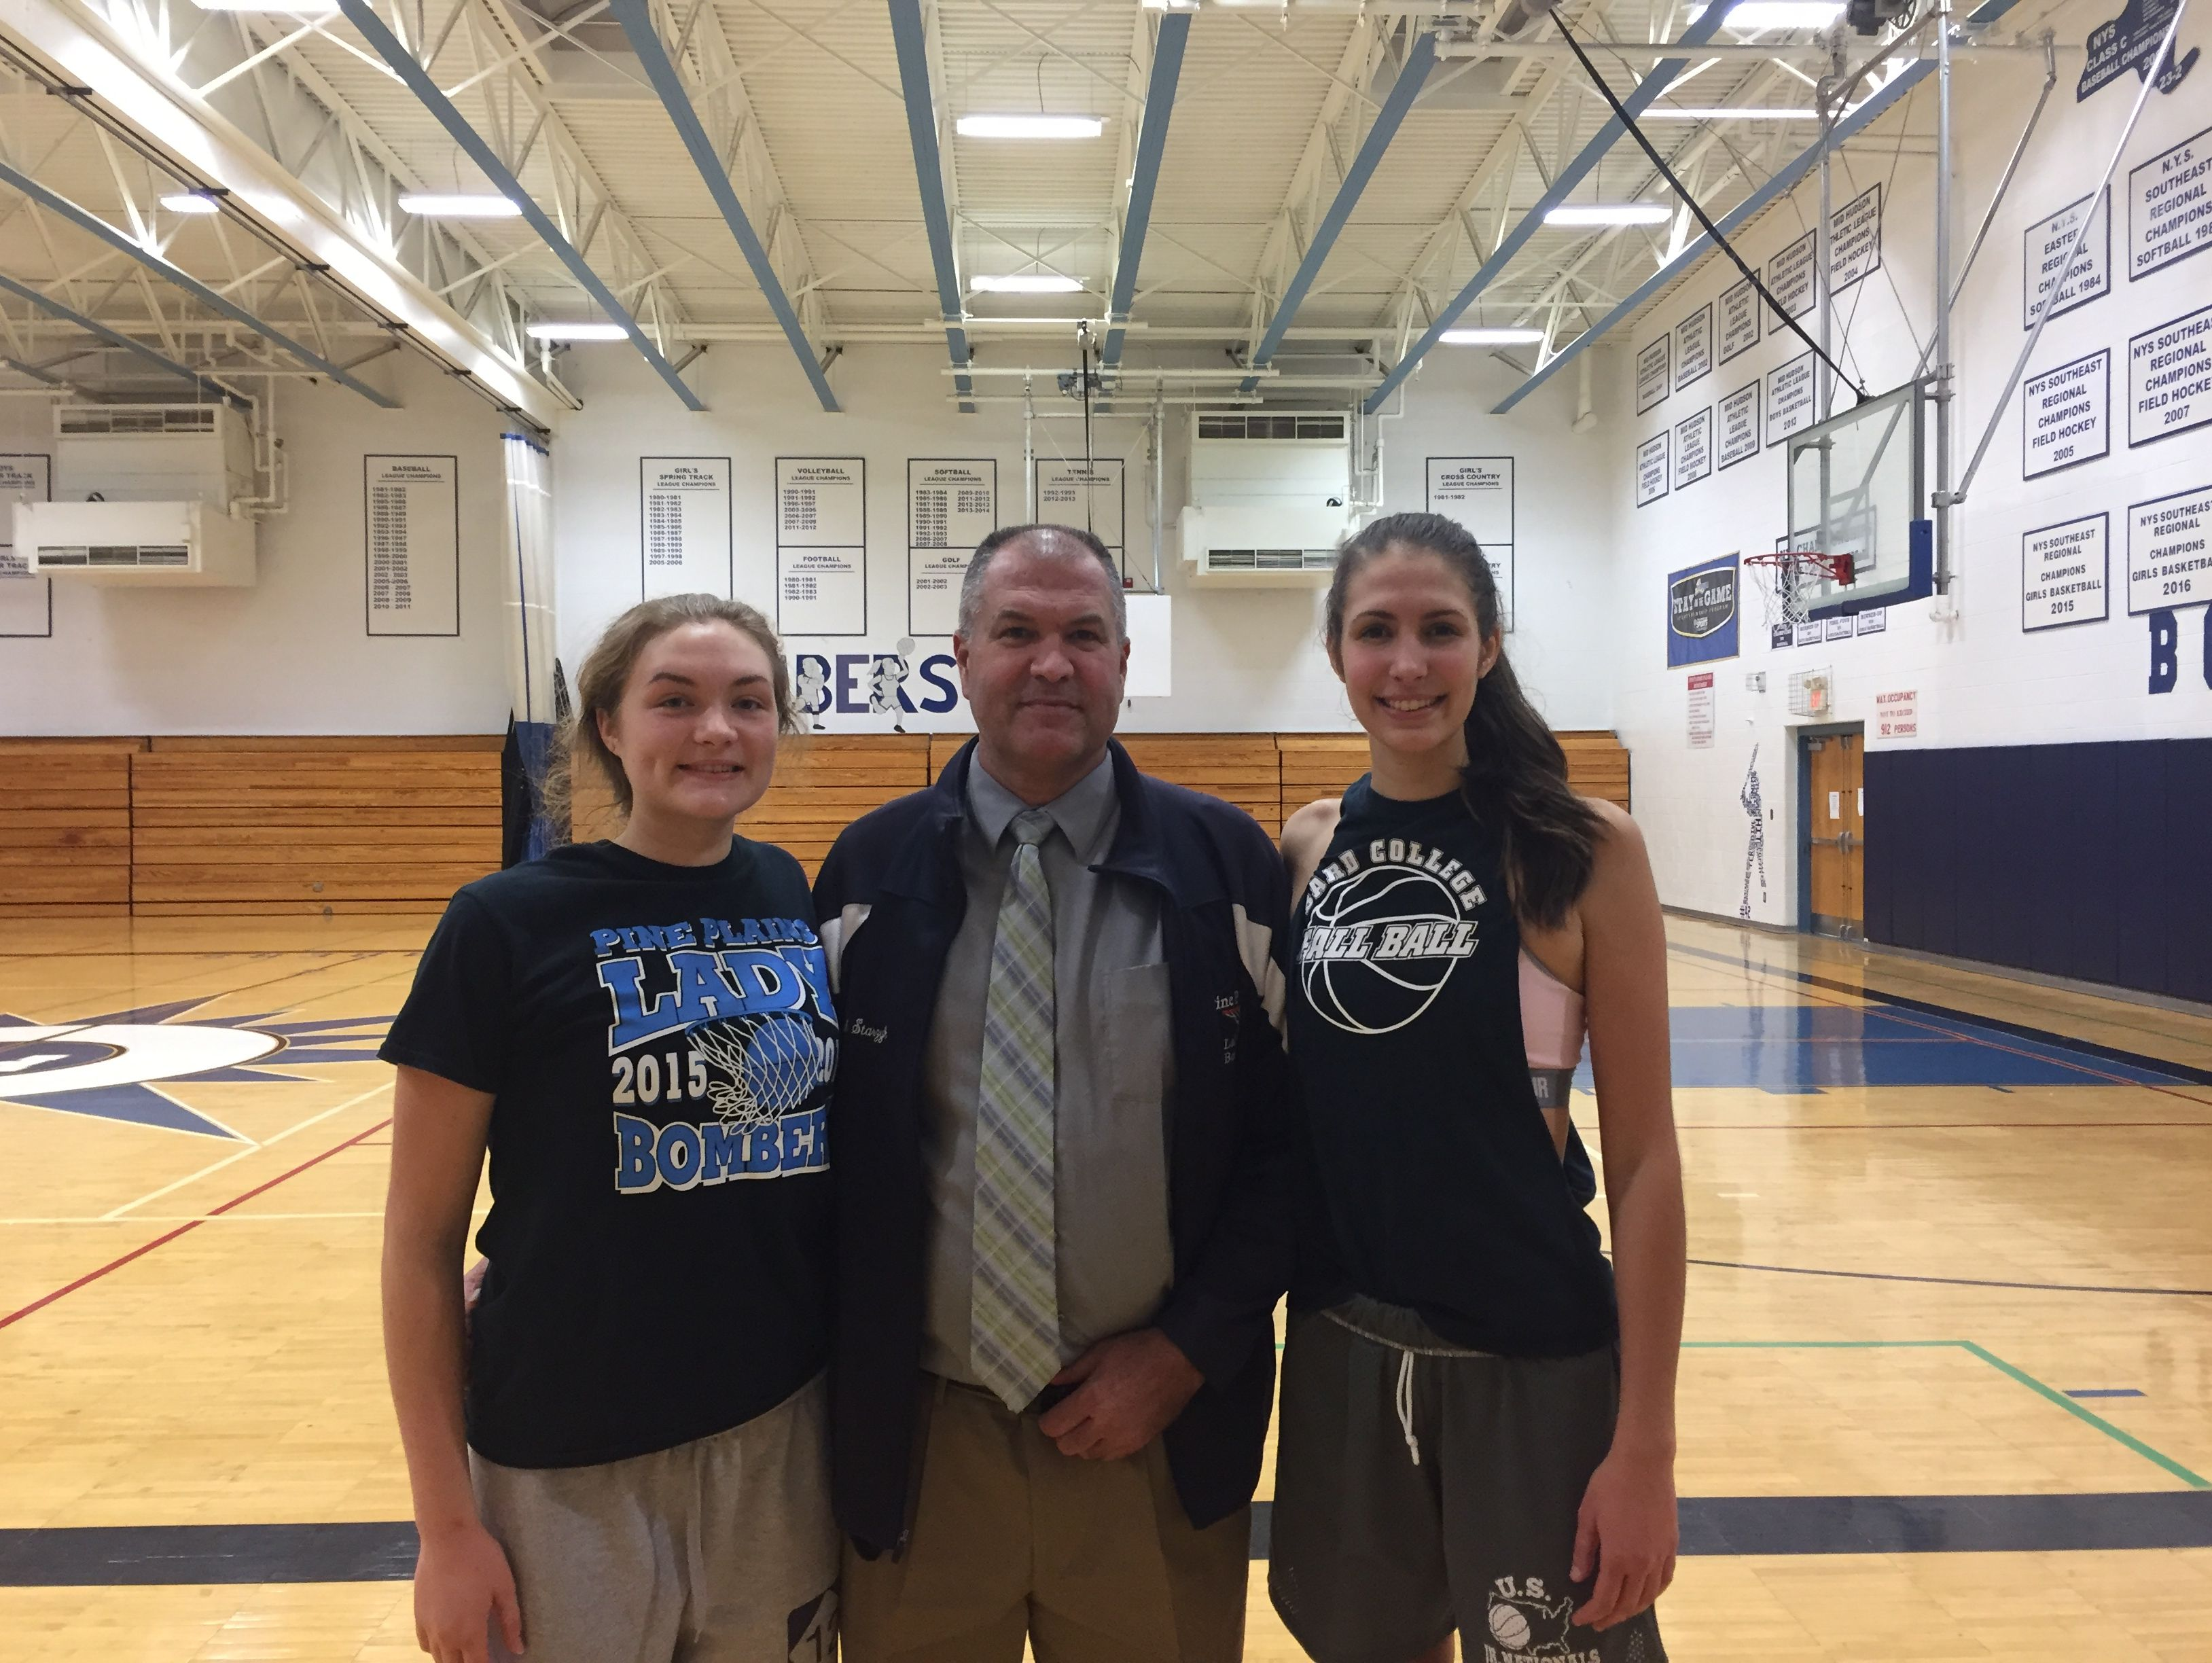 From L to R: Bella Starzyk, Rich Starzyk, Ashley Starzyk of the Pine Plains girls basketball team.